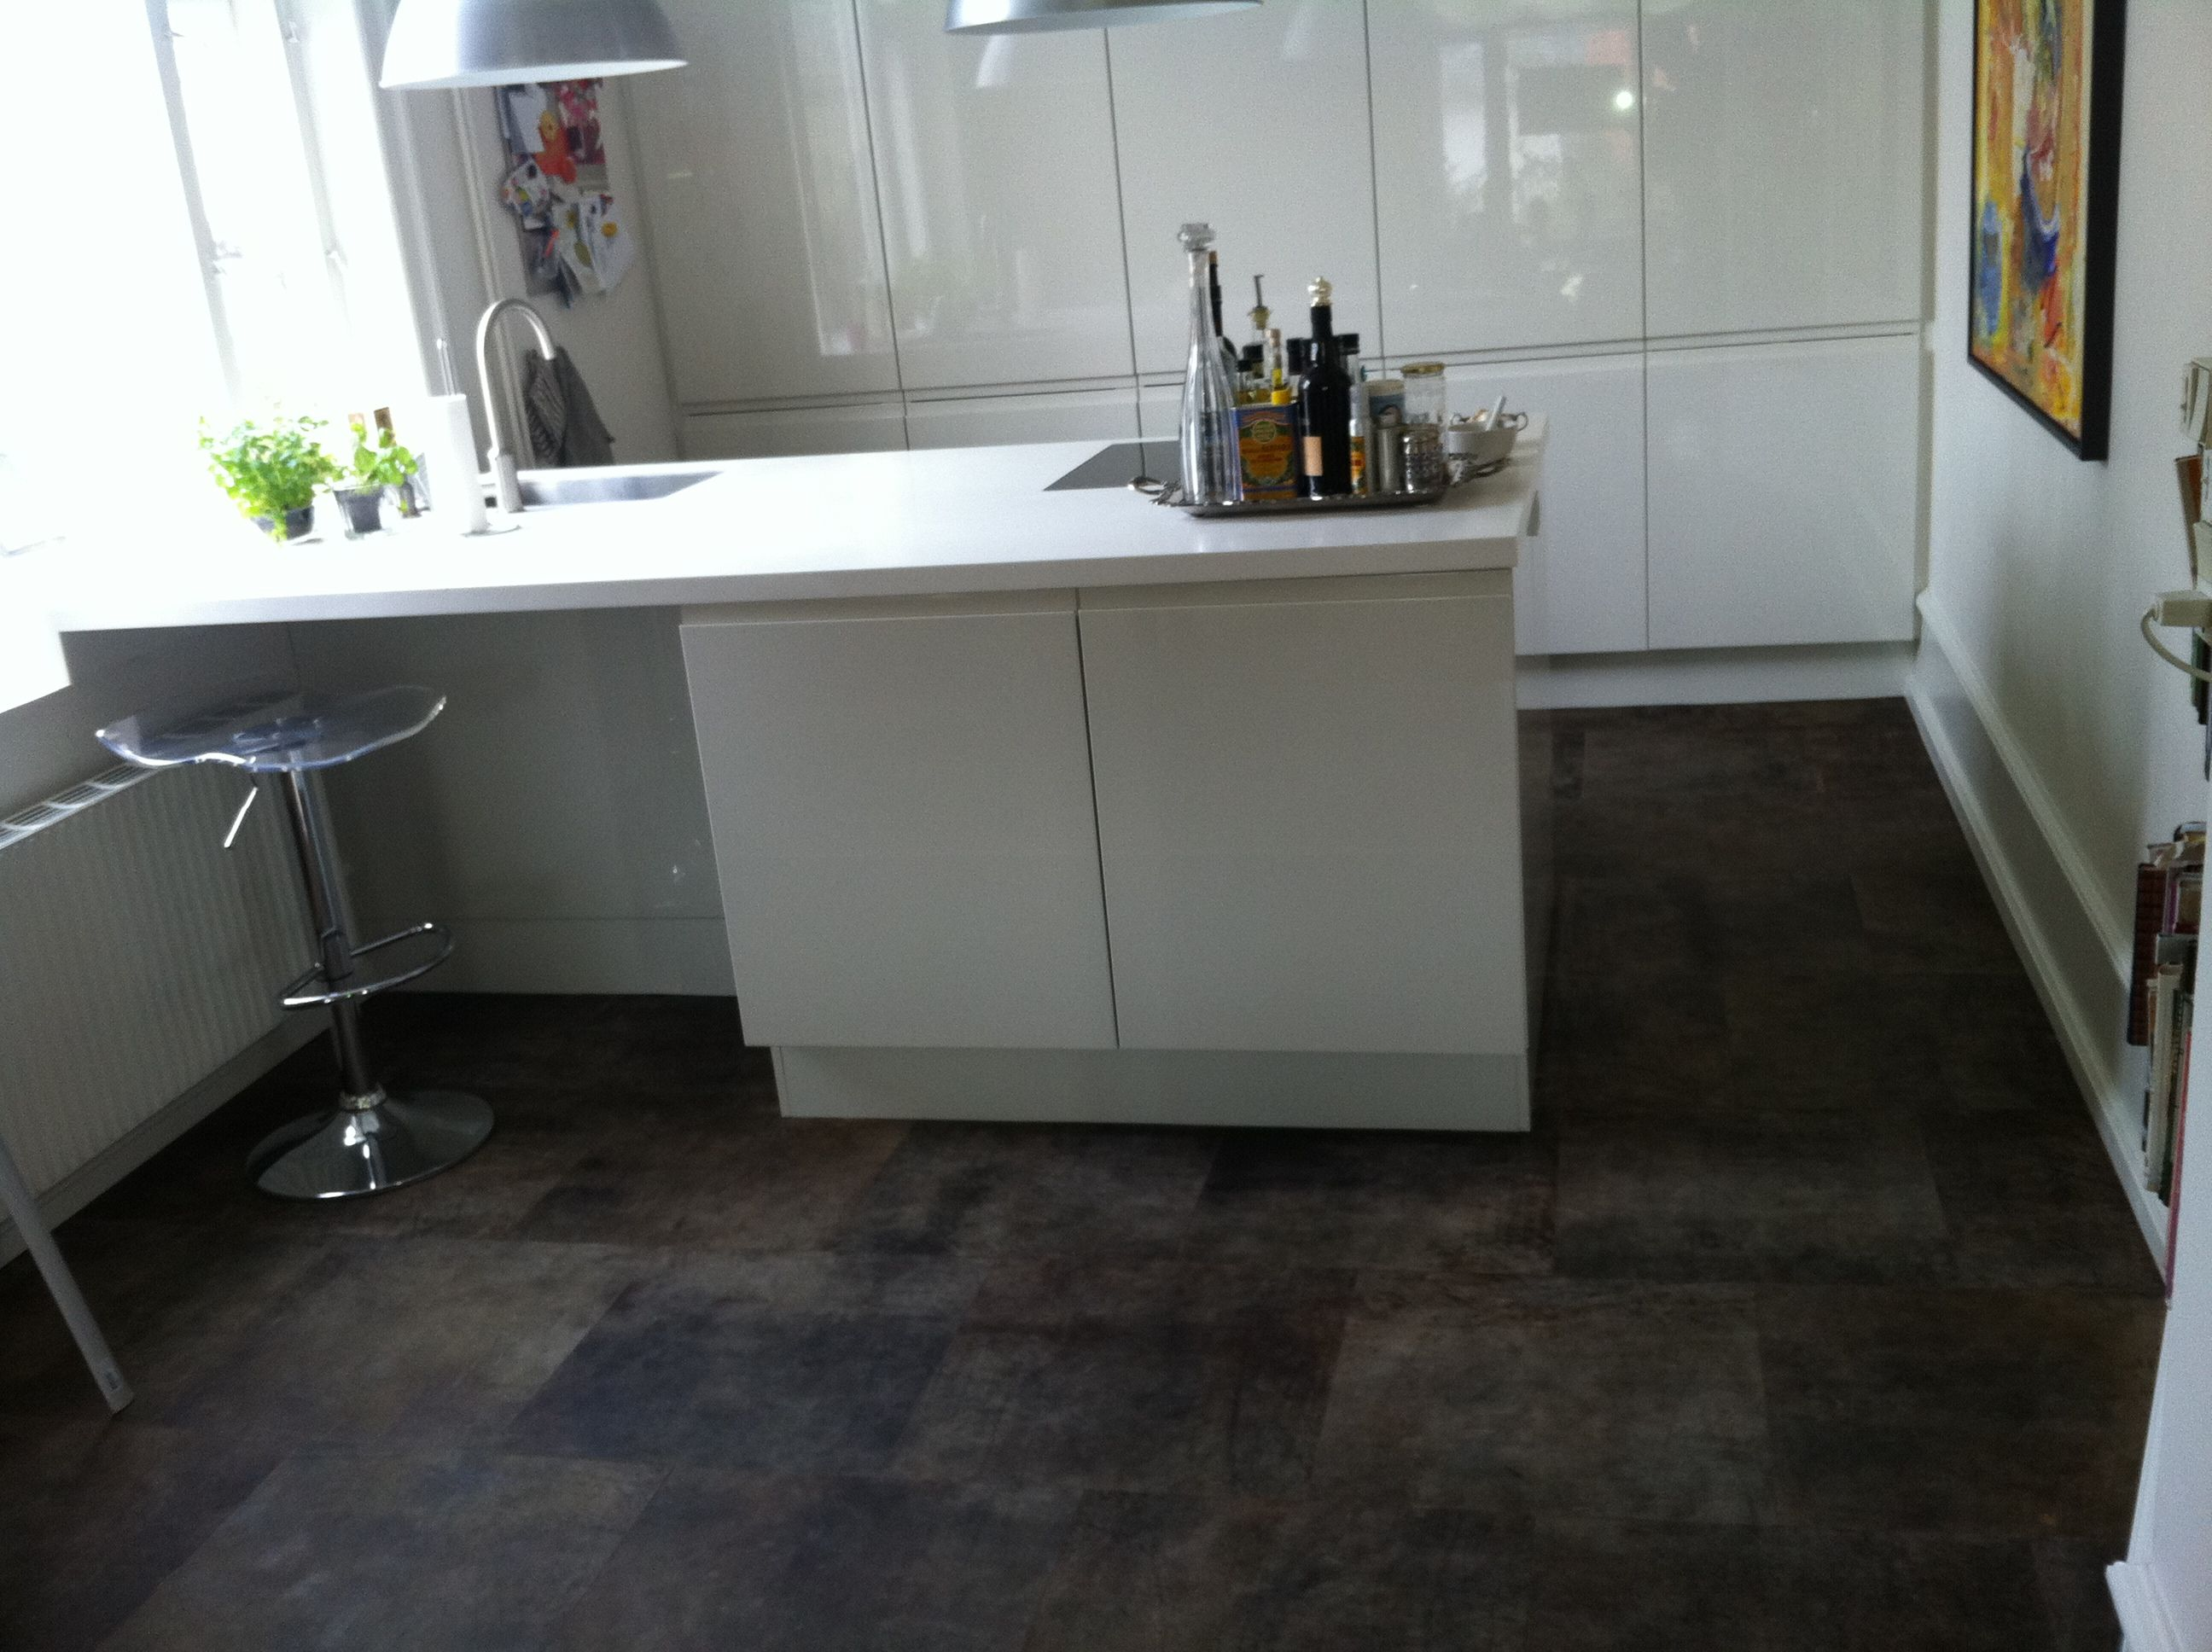 Kitchen flooring in leather tiles. | Alphenberg leather - Water ...